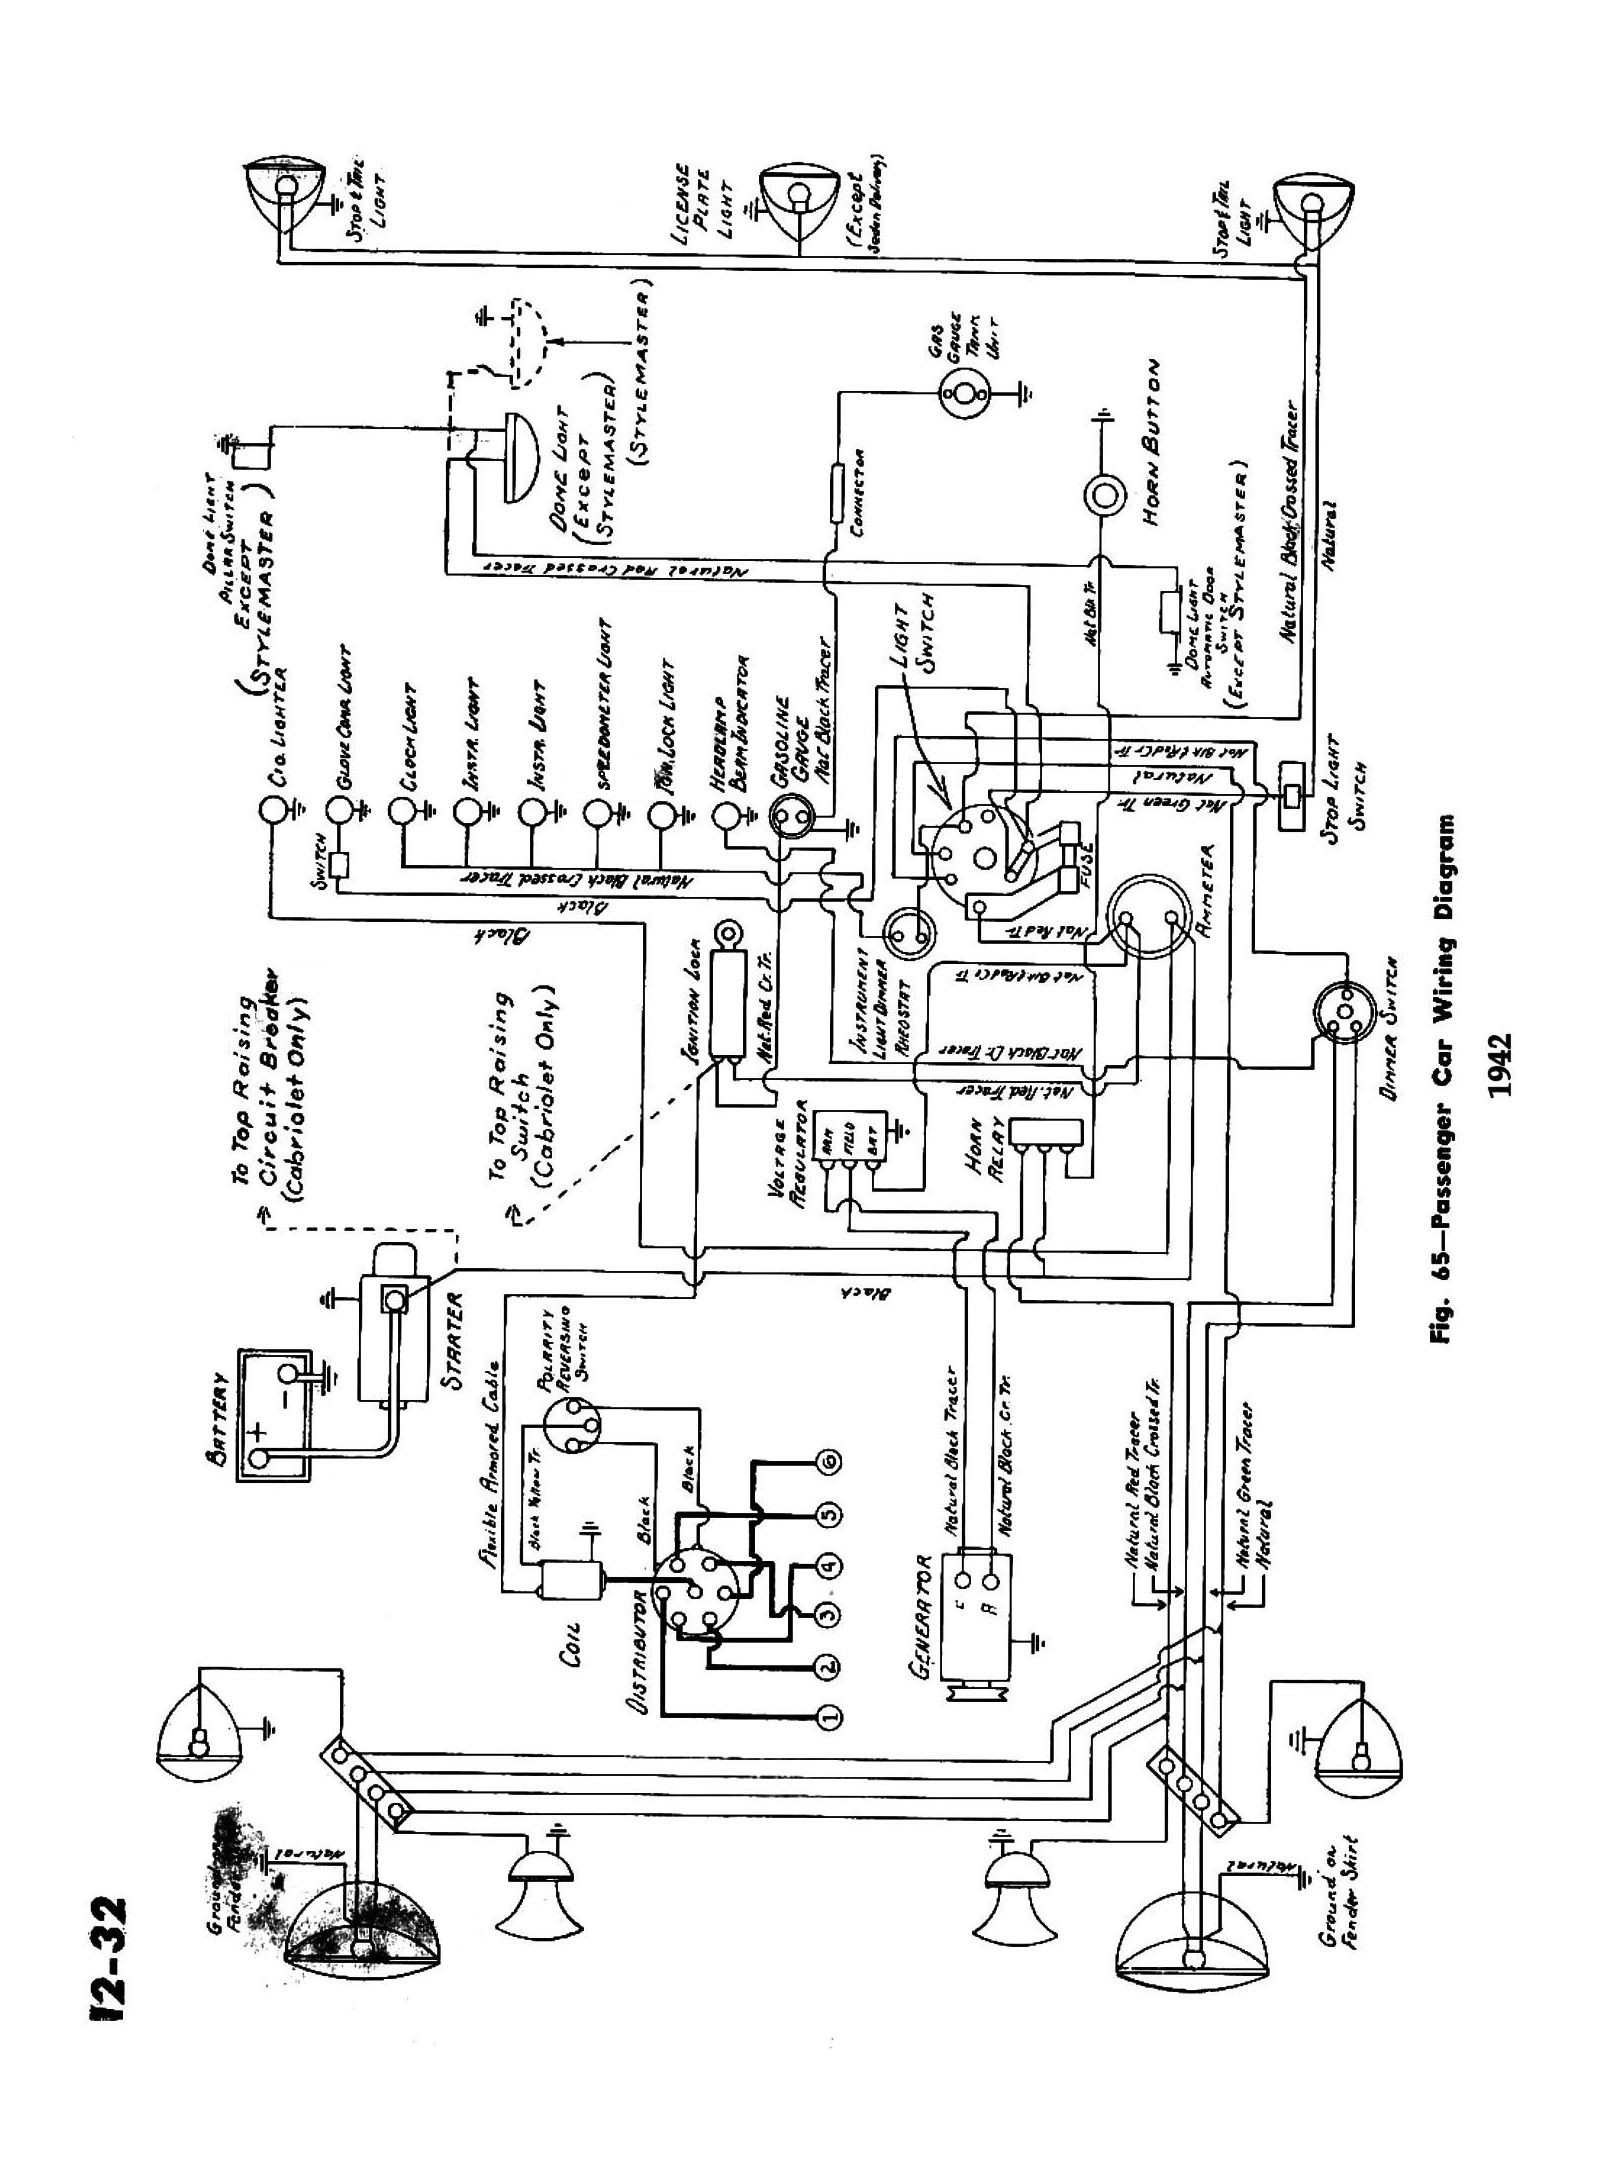 1942 Dodge Wiring Diagram Data Set 1938 Buick Schematic Chevy Diagrams Rh Oldcarmanualproject Com Truck Schematics 2002